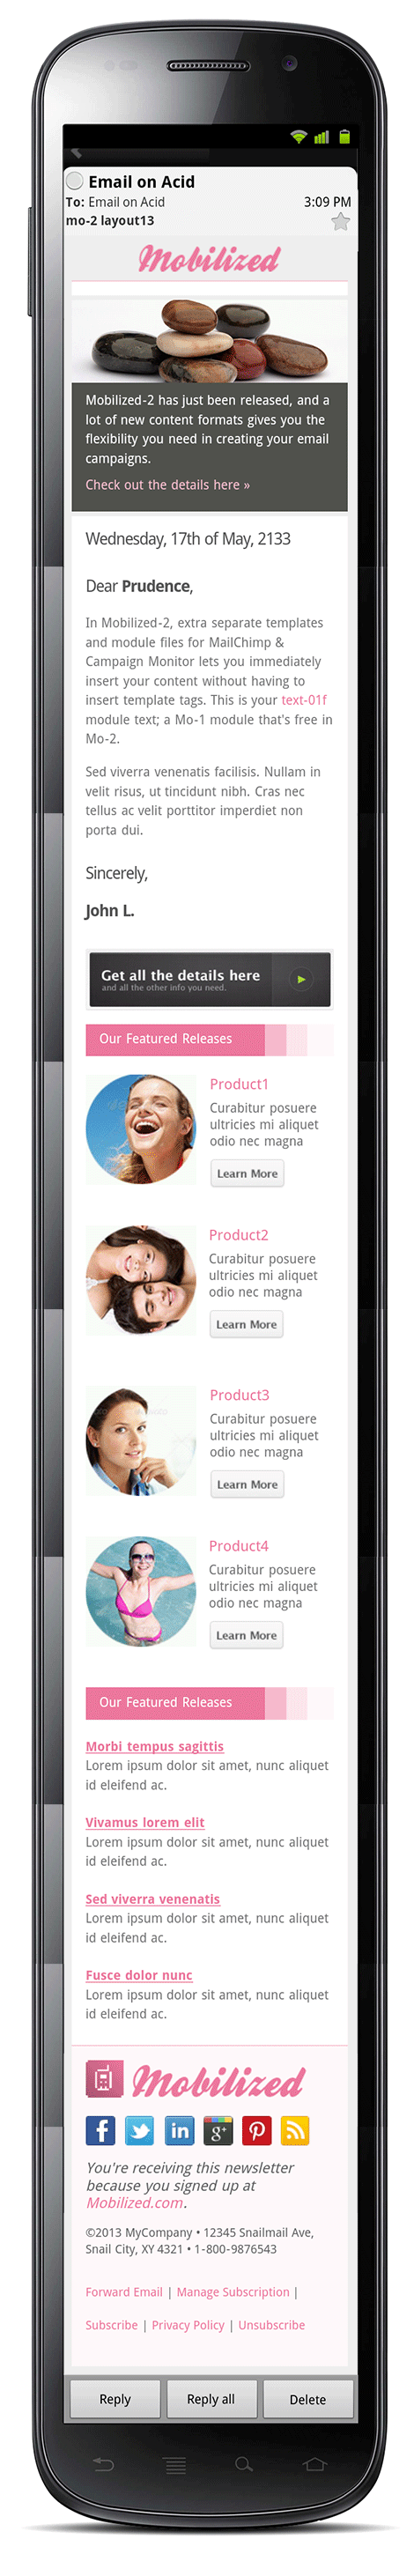 Mobilized-2 - Responsive & Modular Email Templates - Screenshot of layout12 in an Android 2.3 mobile device.